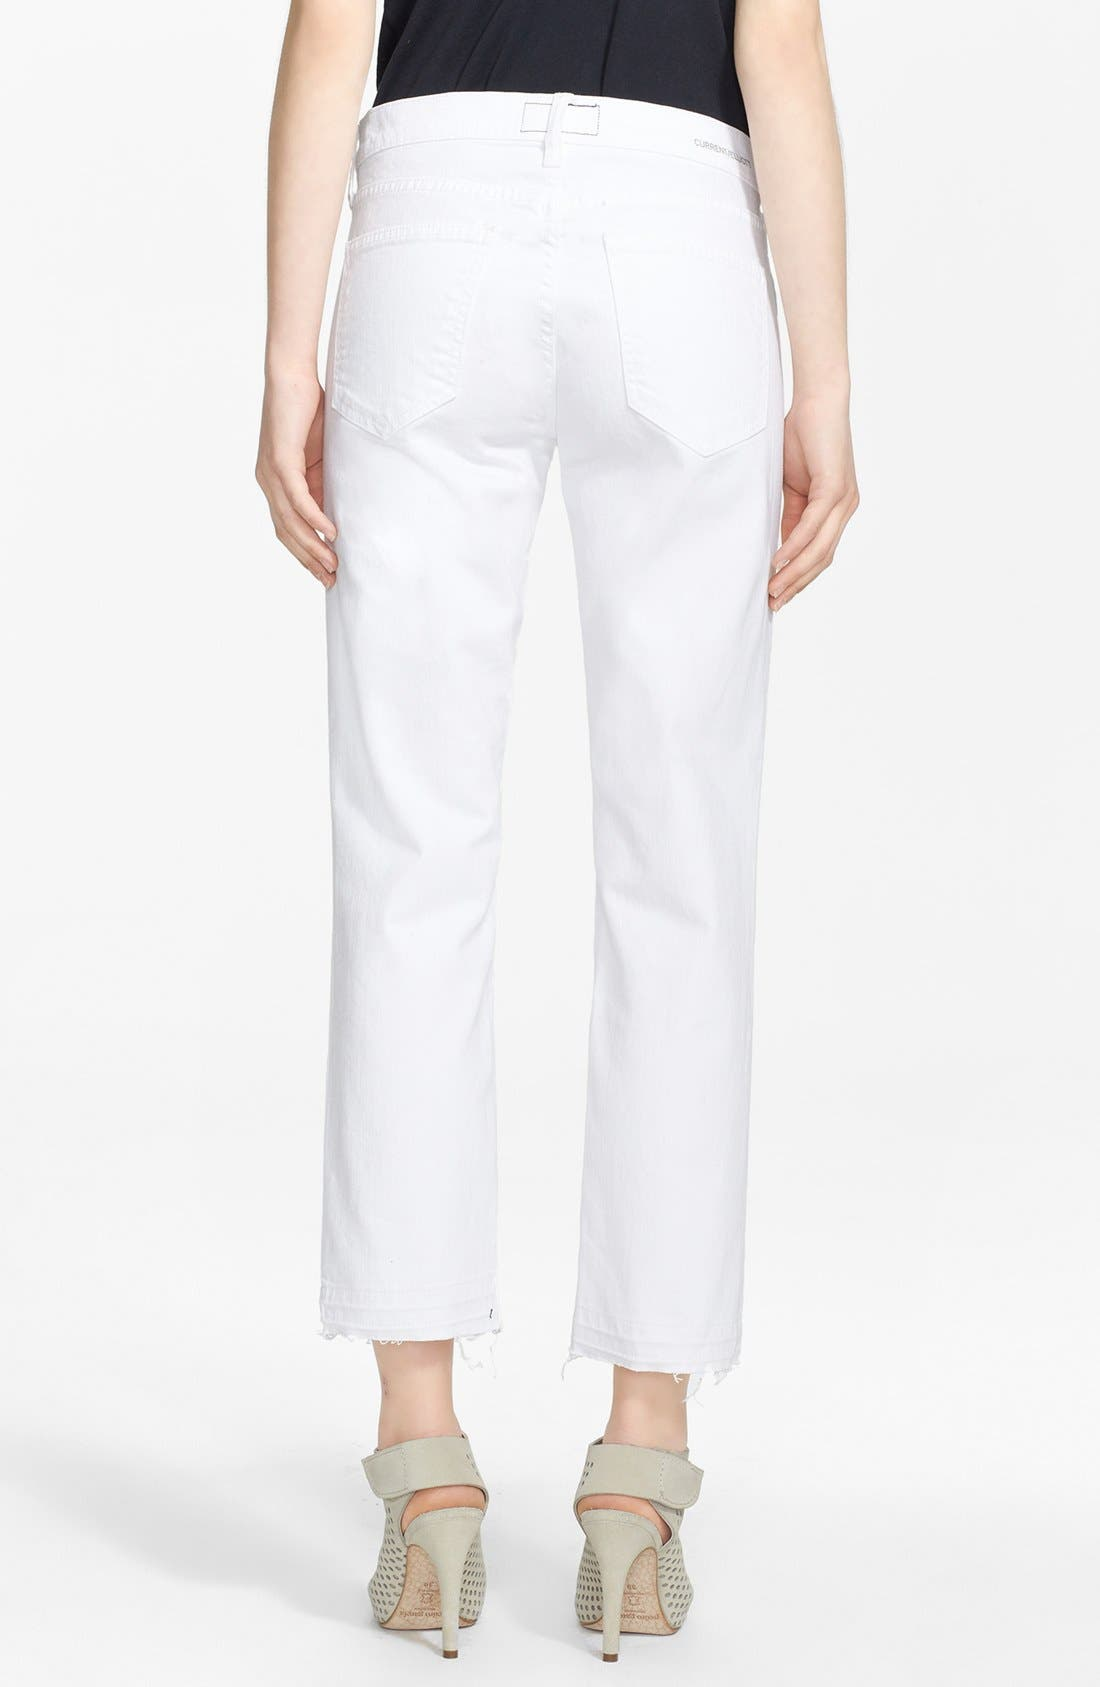 CURRENT/ELLIOTT, 'The Cropped Straight' Straight Leg Crop Jeans, Alternate thumbnail 2, color, 131